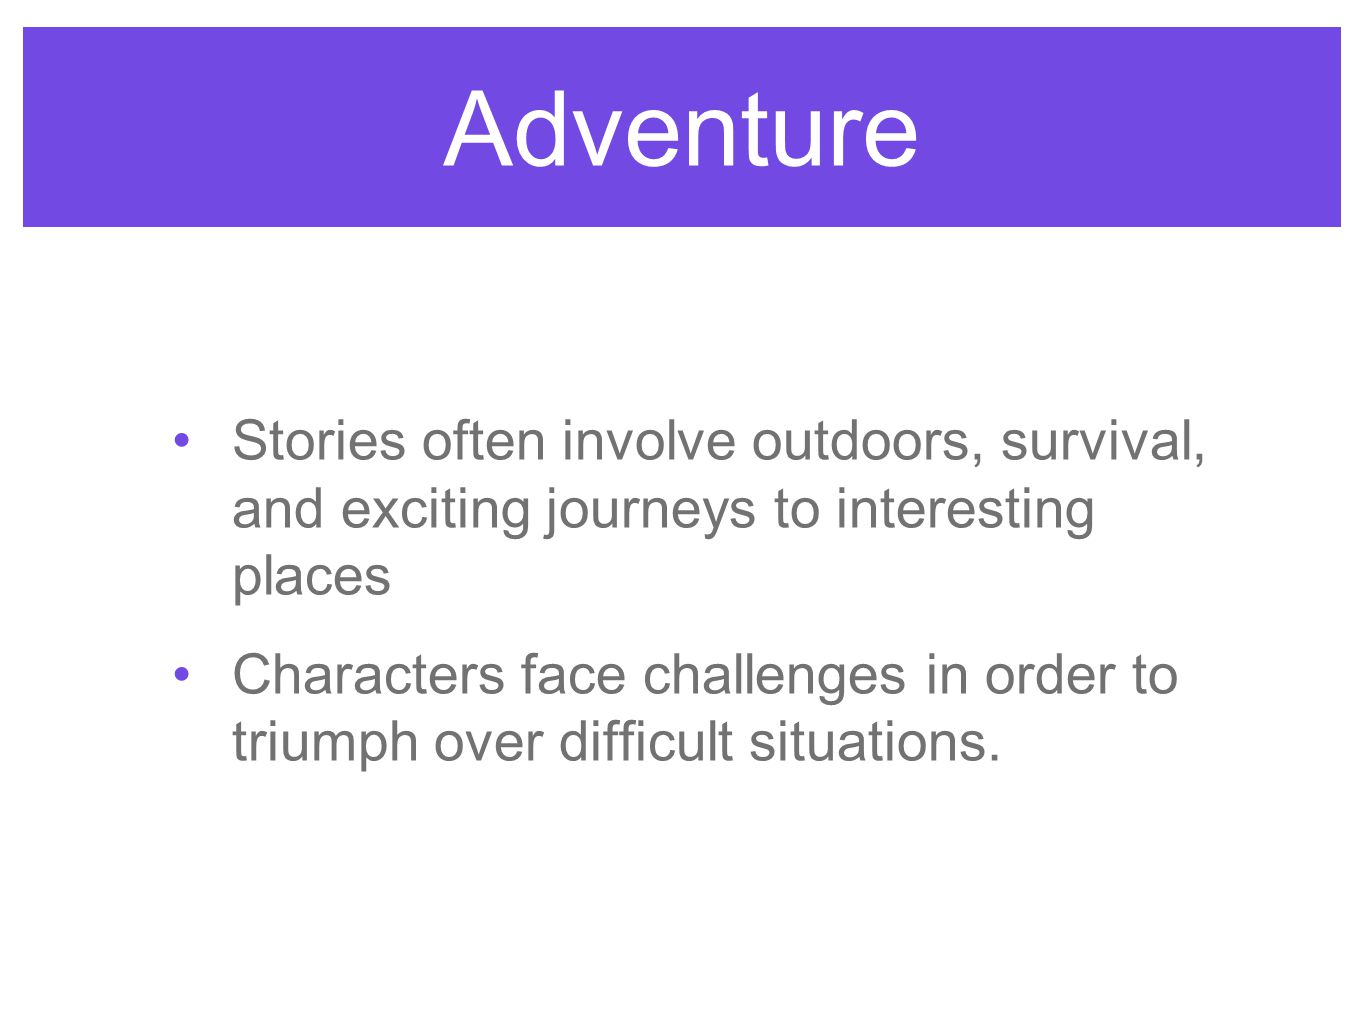 Adventure Stories often involve outdoors, survival, and exciting journeys to interesting places.